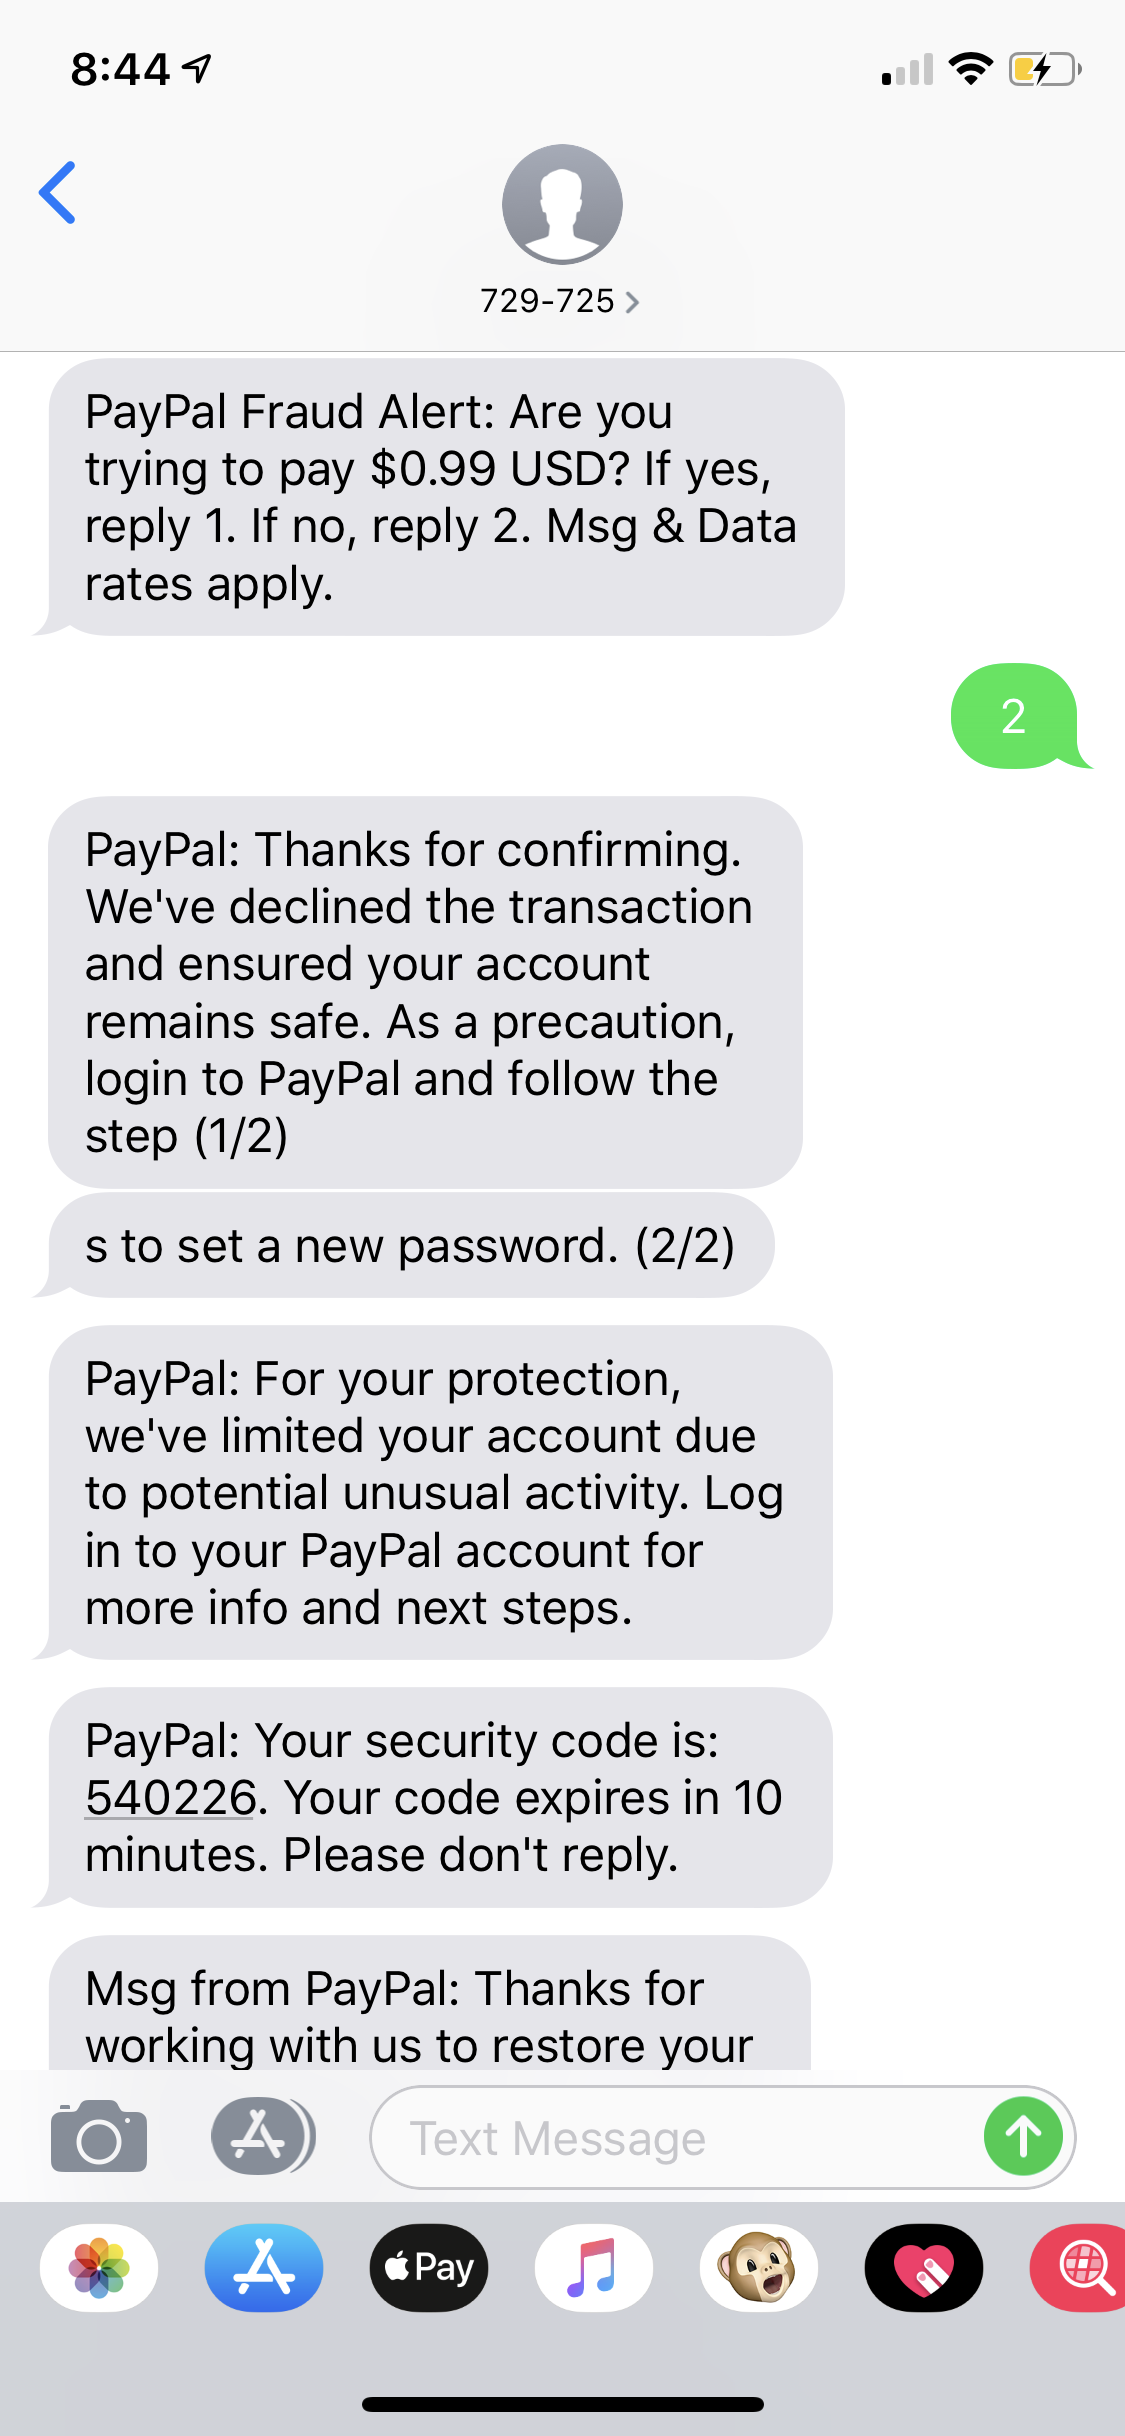 Text message from <remove> - PayPal Community